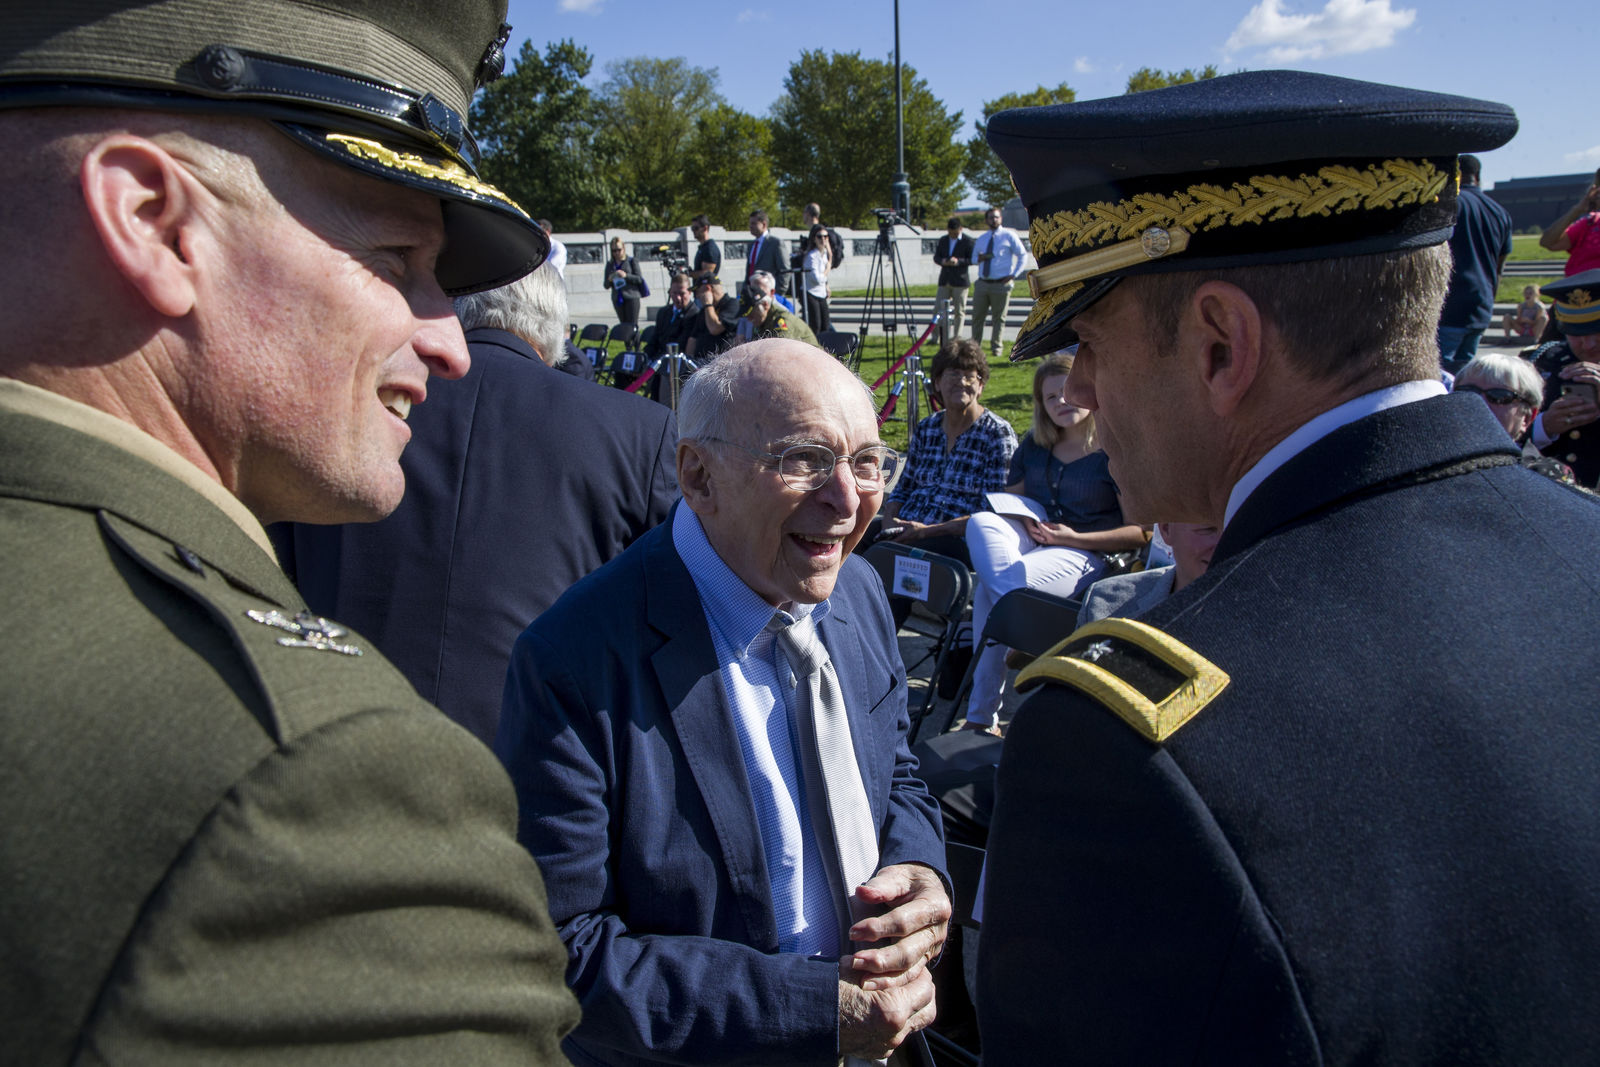 World War II veteran Buck Marsh, center, talks with two active duty military members before a ceremony to present a Bronze Star to Clarence Smoyer, at the World War II Memorial, Wednesday, Sept. 18, 2019, in Washington. (AP Photo/Alex Brandon)